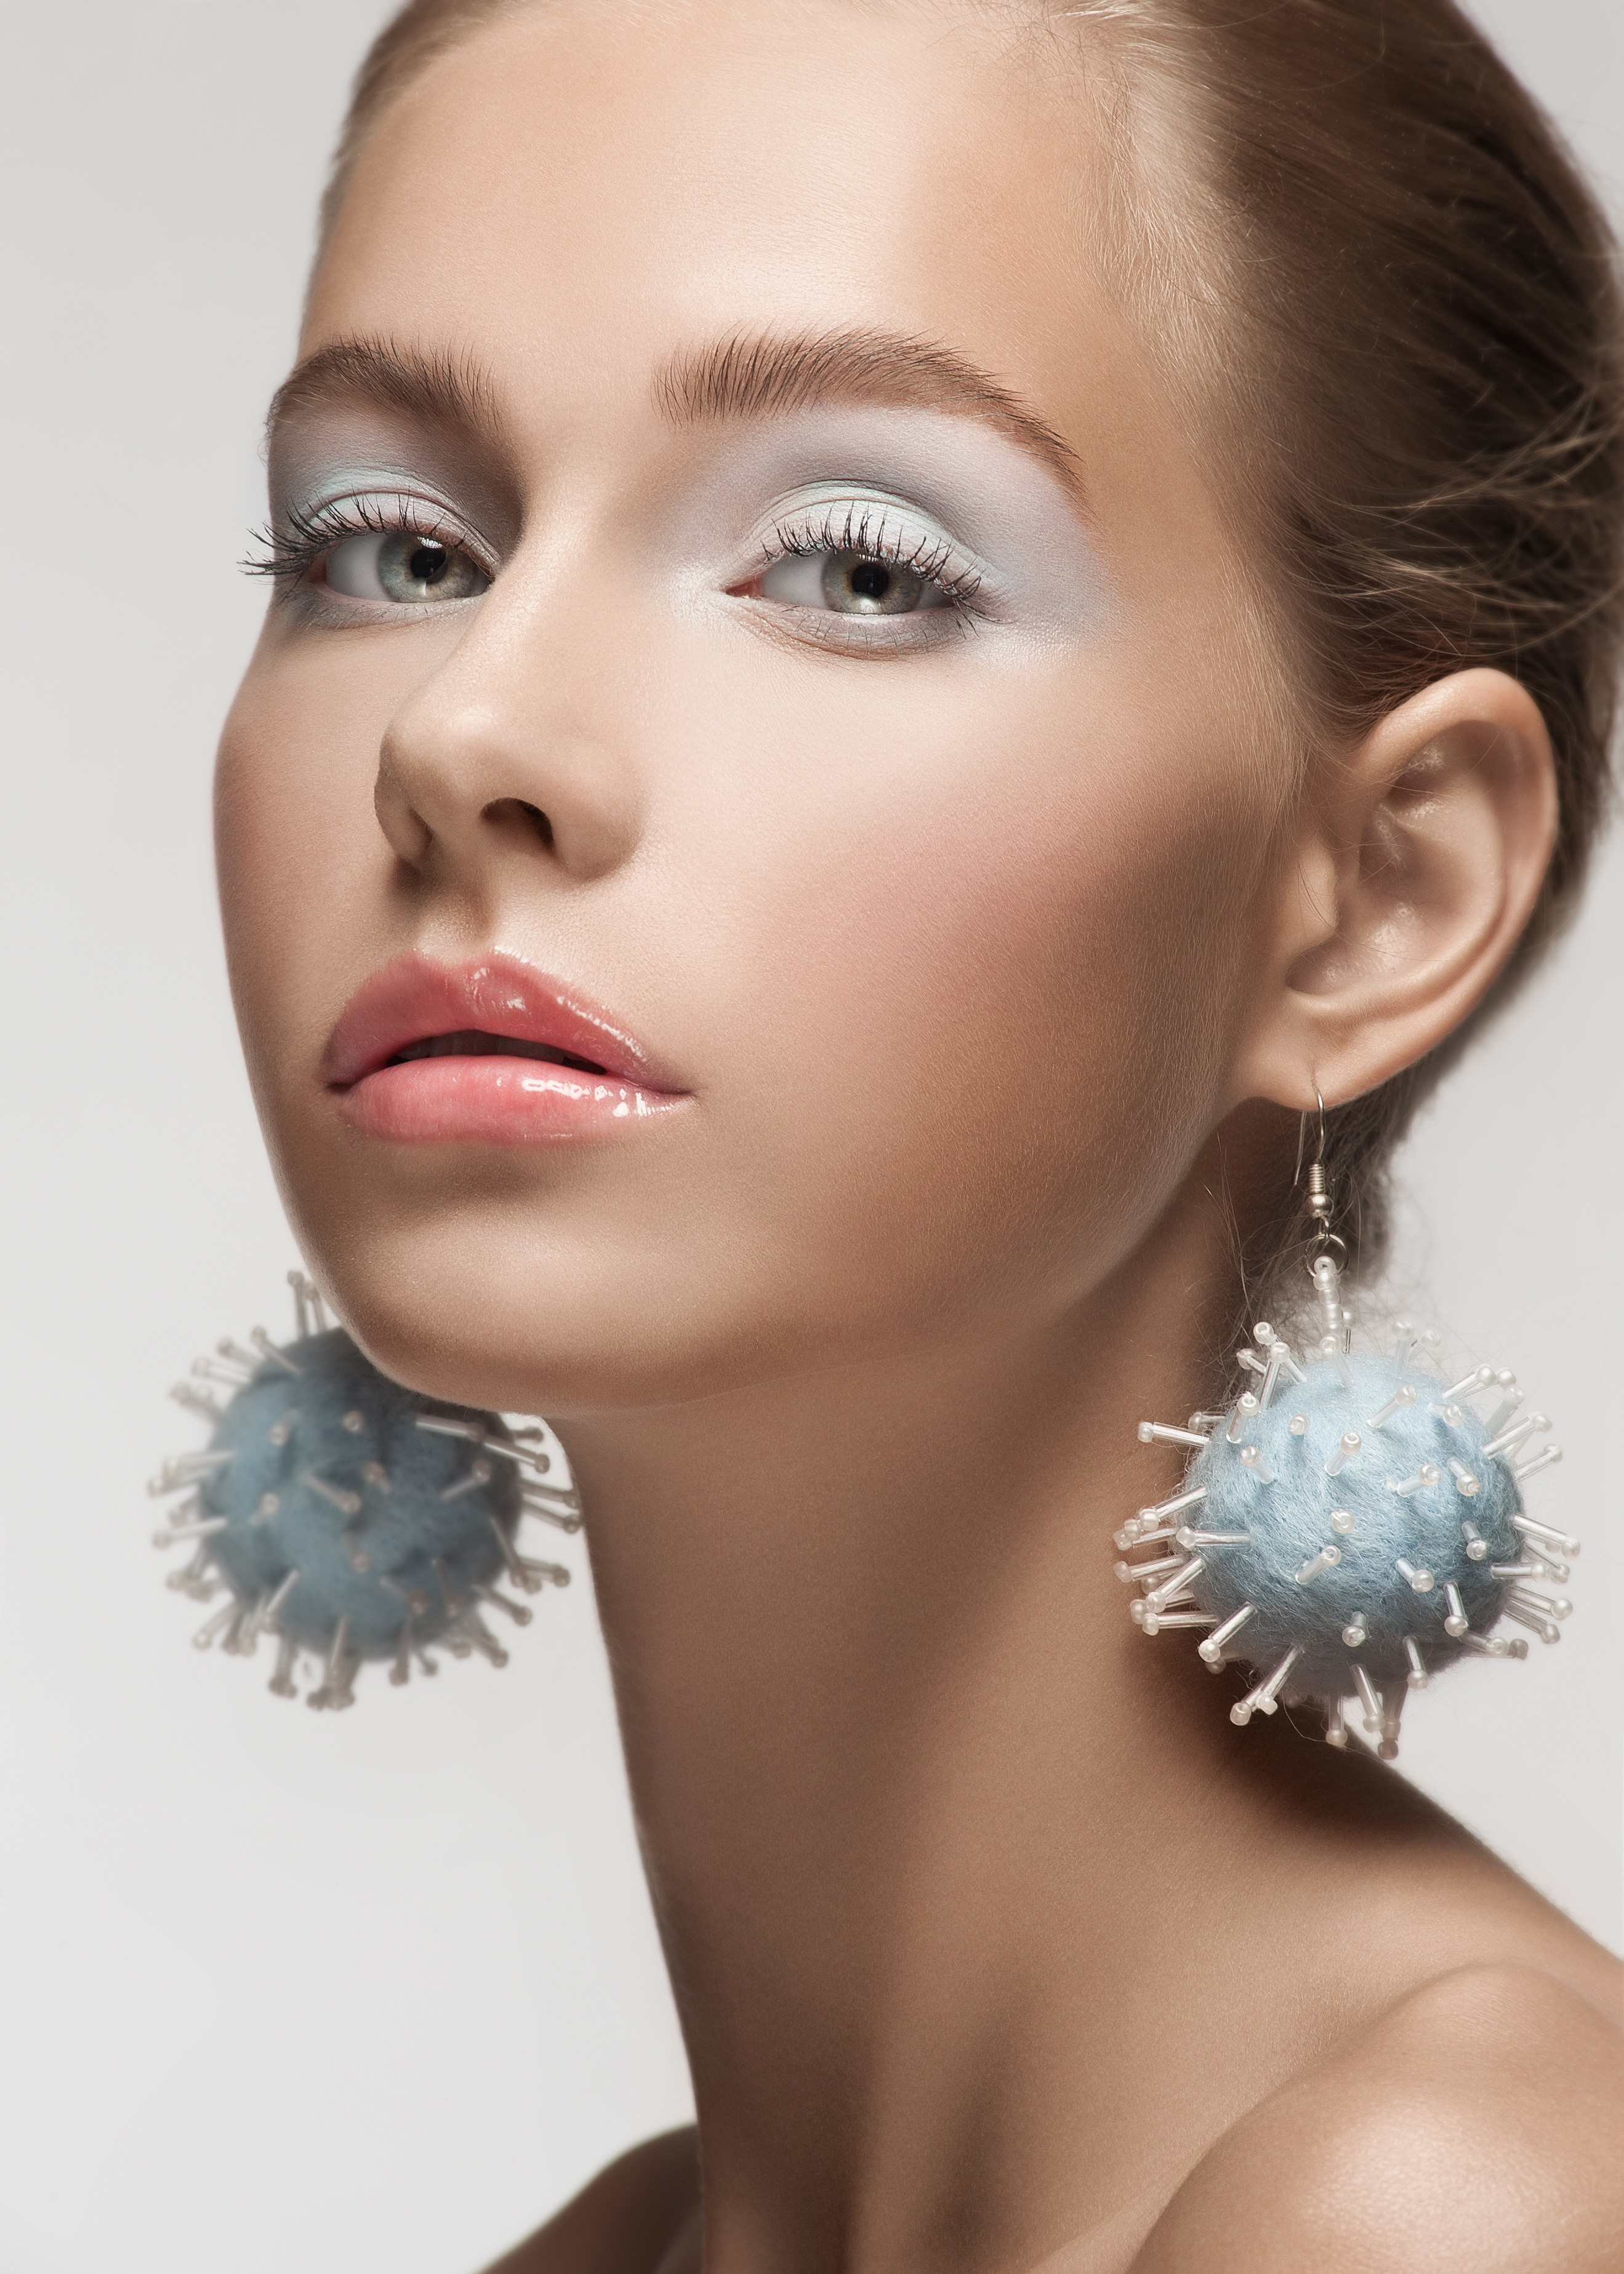 Blue eyeshadow pastel eyes BeautyandHairdressing